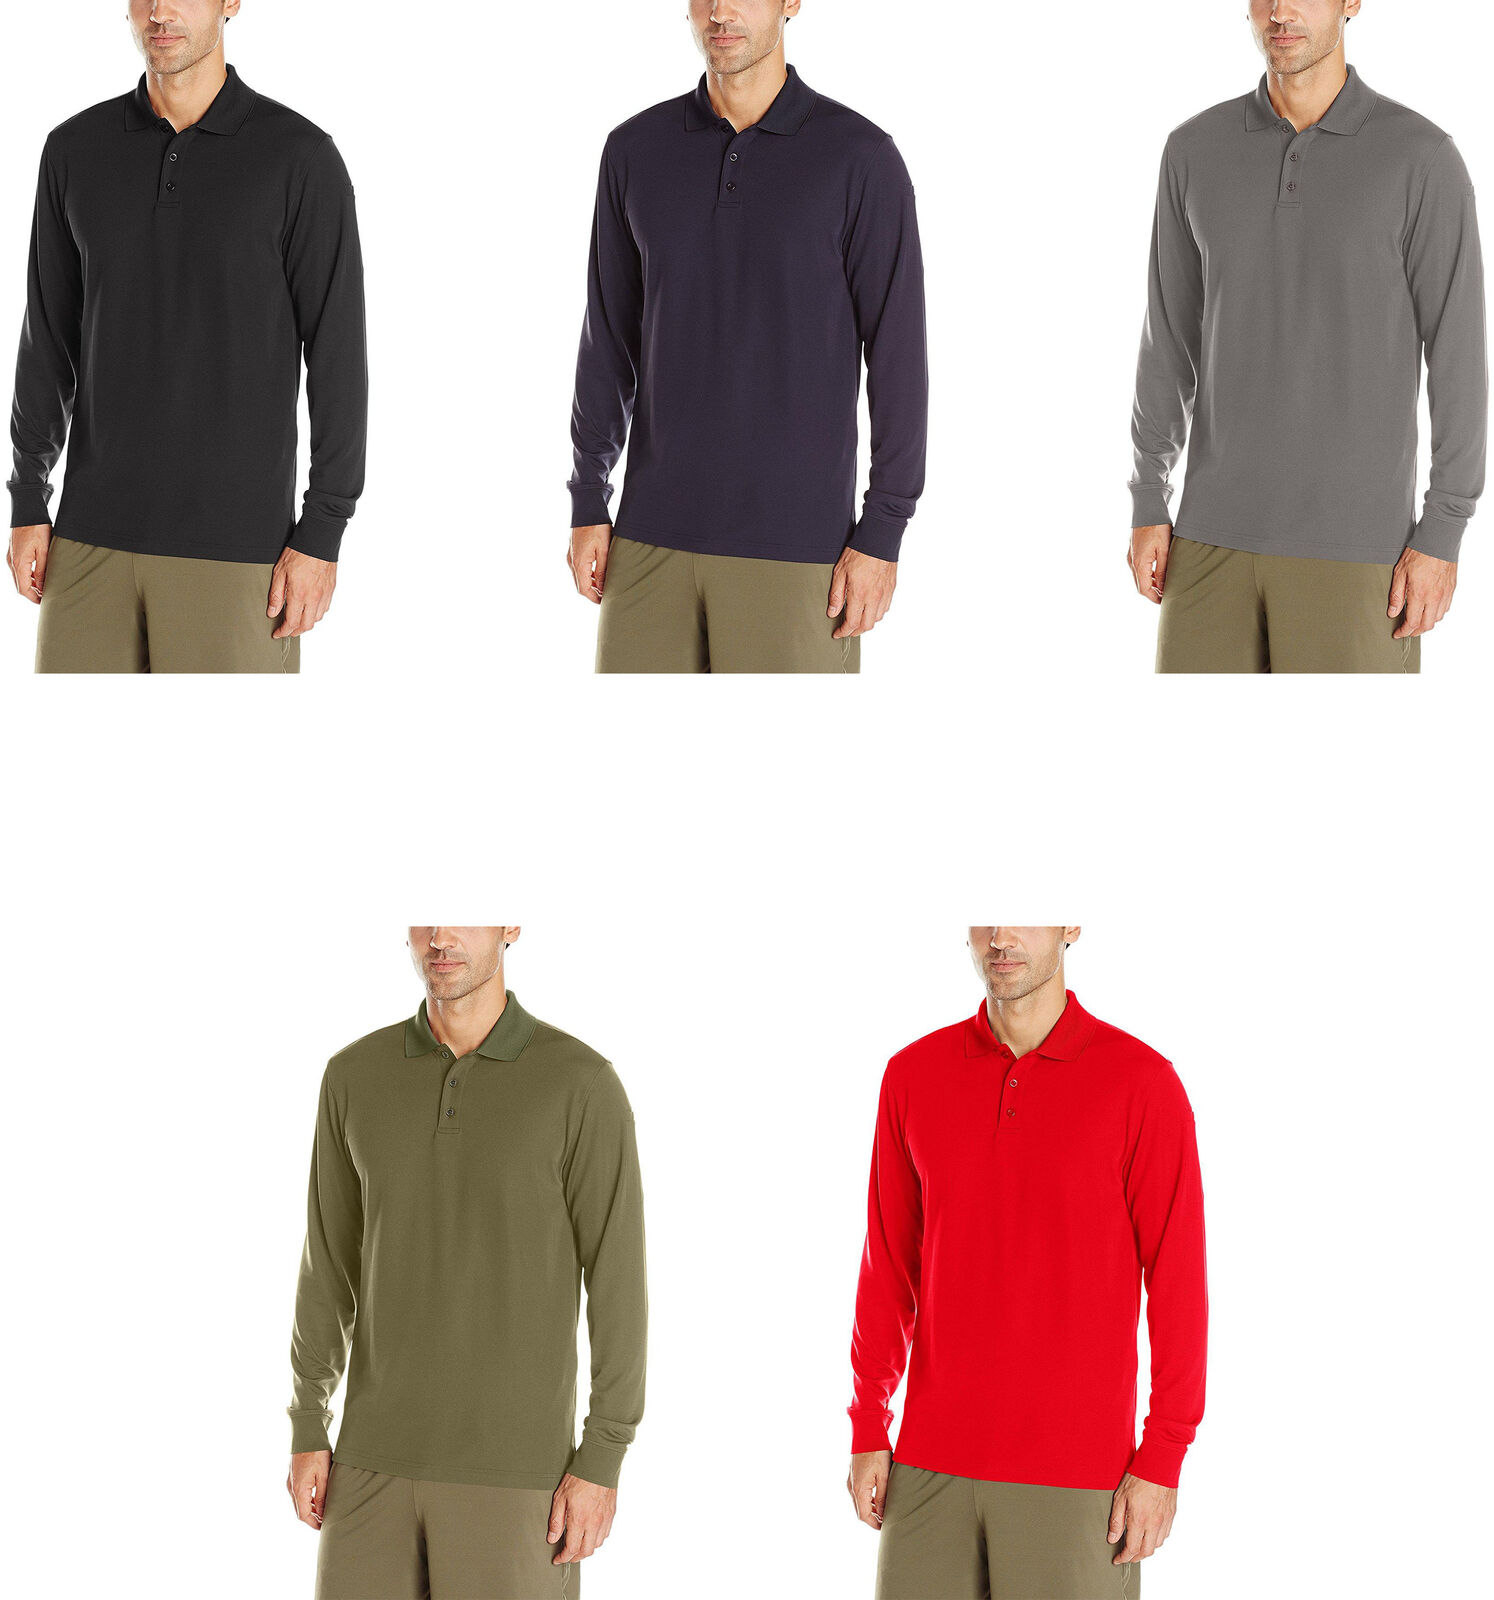 Under Armour Mens Tactical Performance Long Sleeve Polo 5 Colors